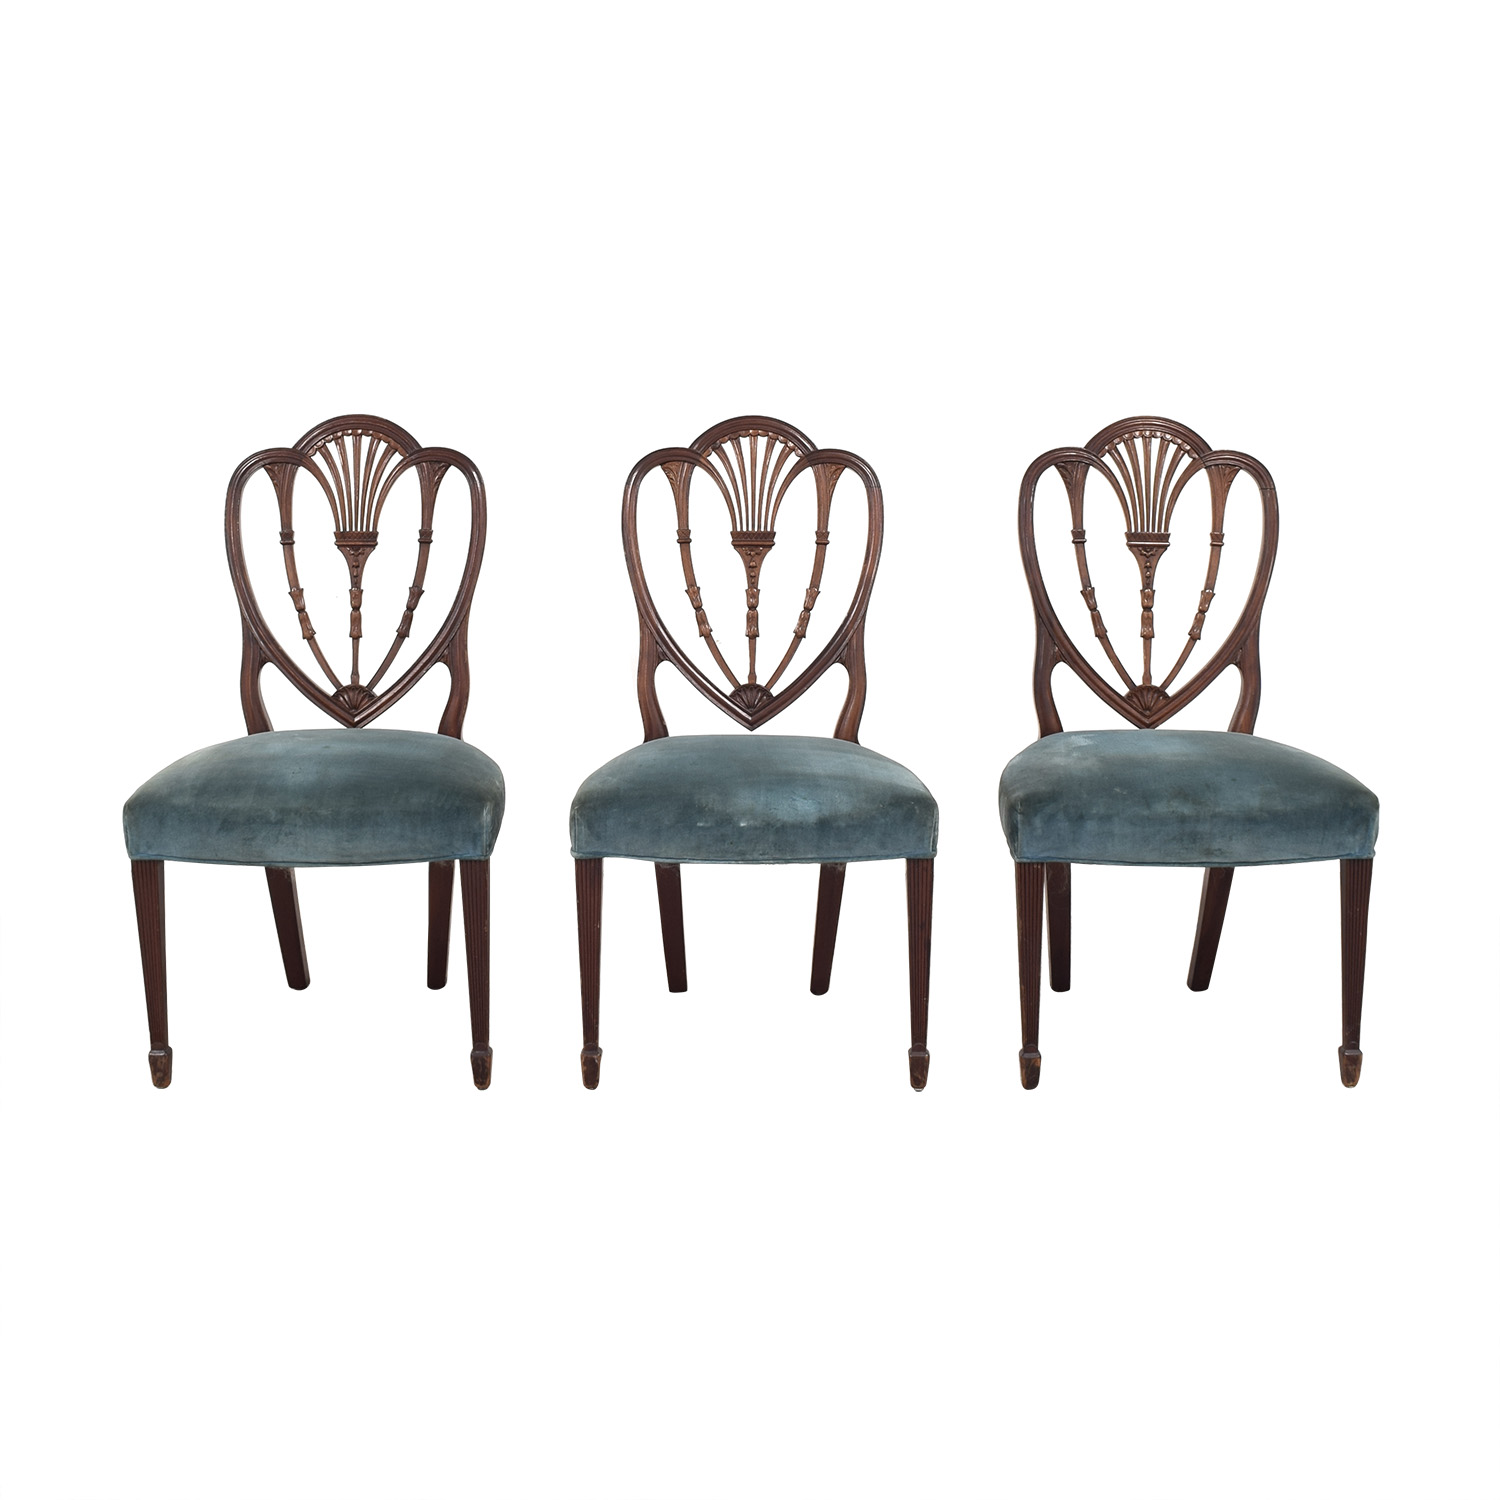 Vintage Decorative Dining Chairs sale